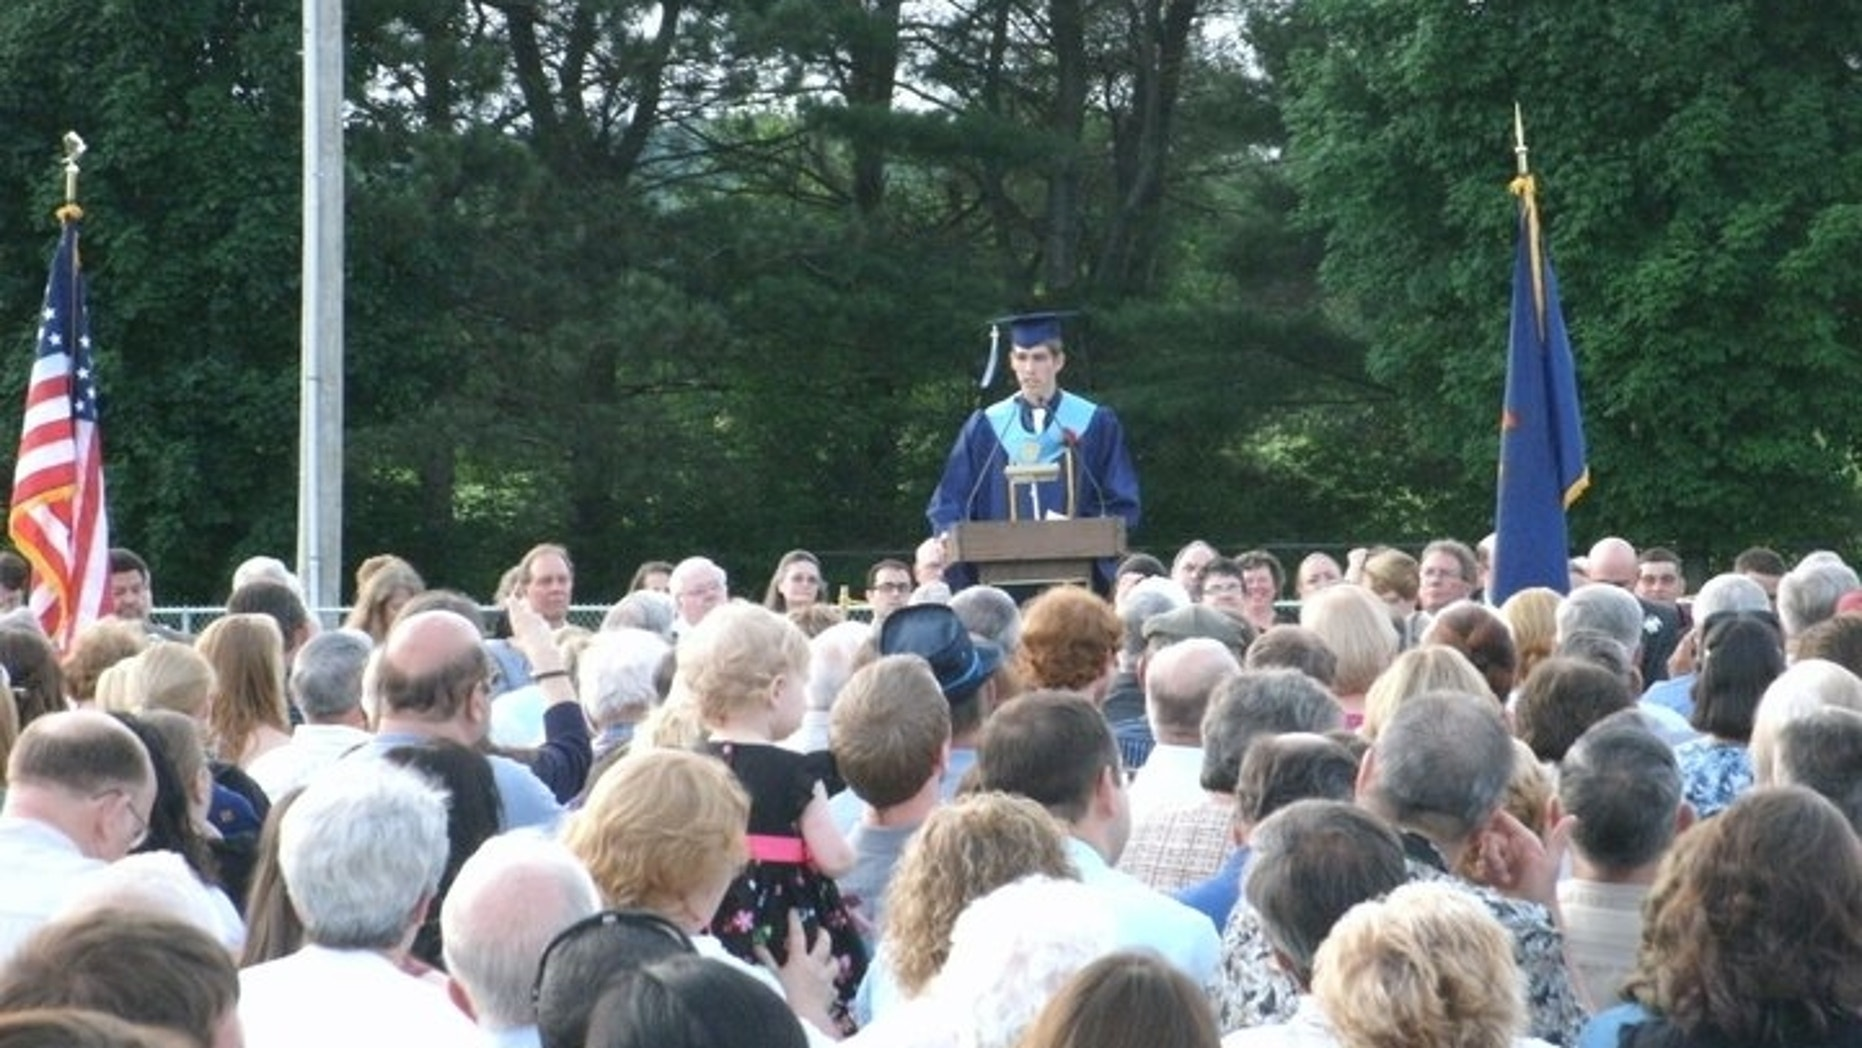 Vermont valedictorian Kyle Gearwar told to he could not speak about Jesus in his graduation speech.